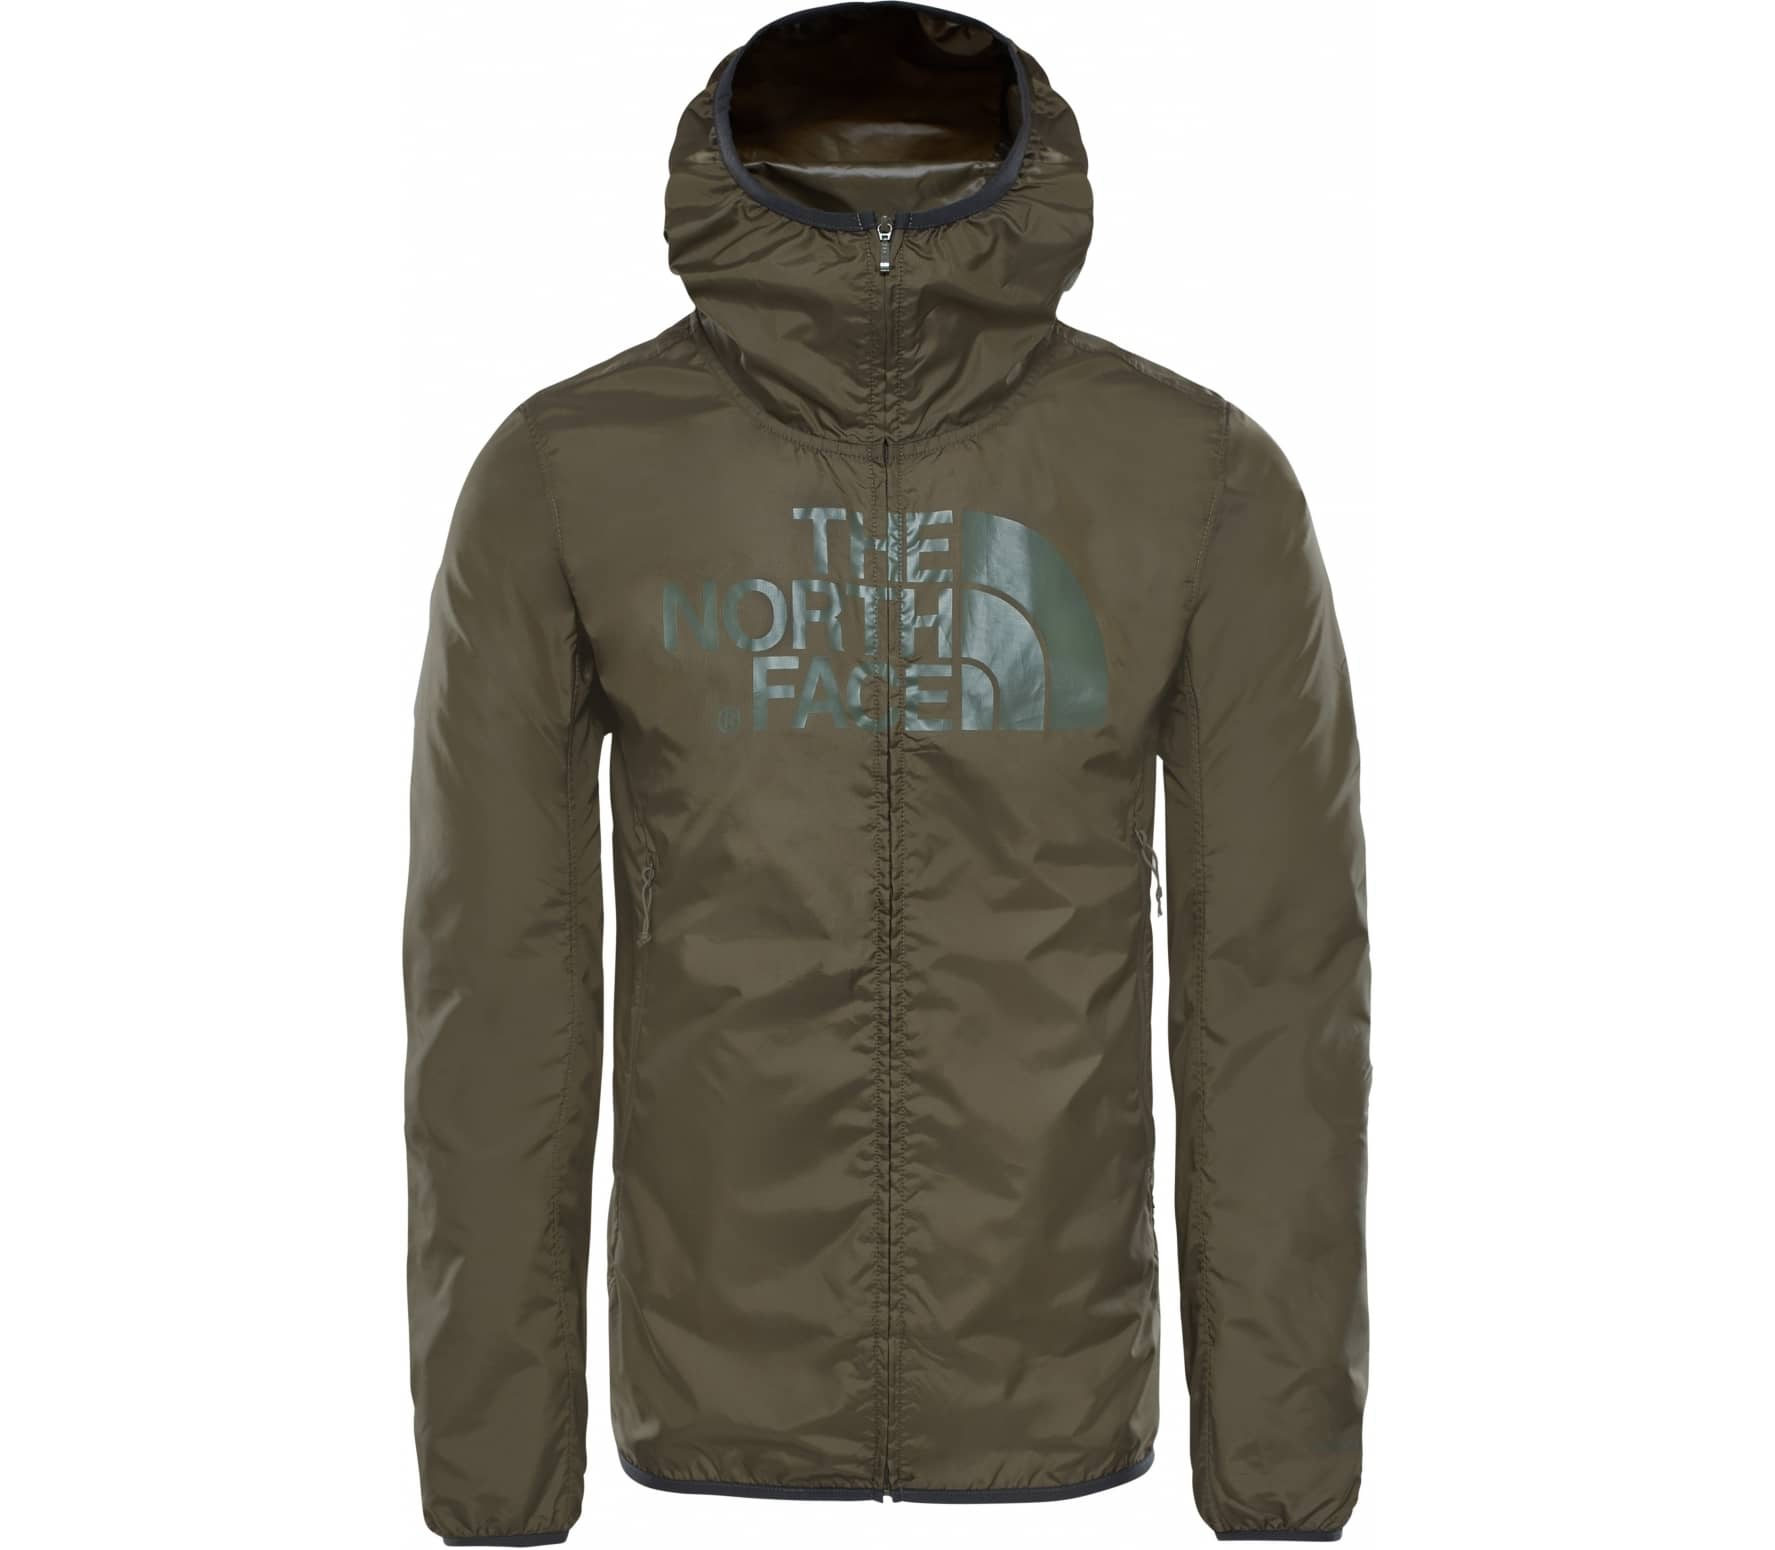 8e3fa1970 The North Face - Drew Peak WindWall? men's windbreaker (olivgrün ...